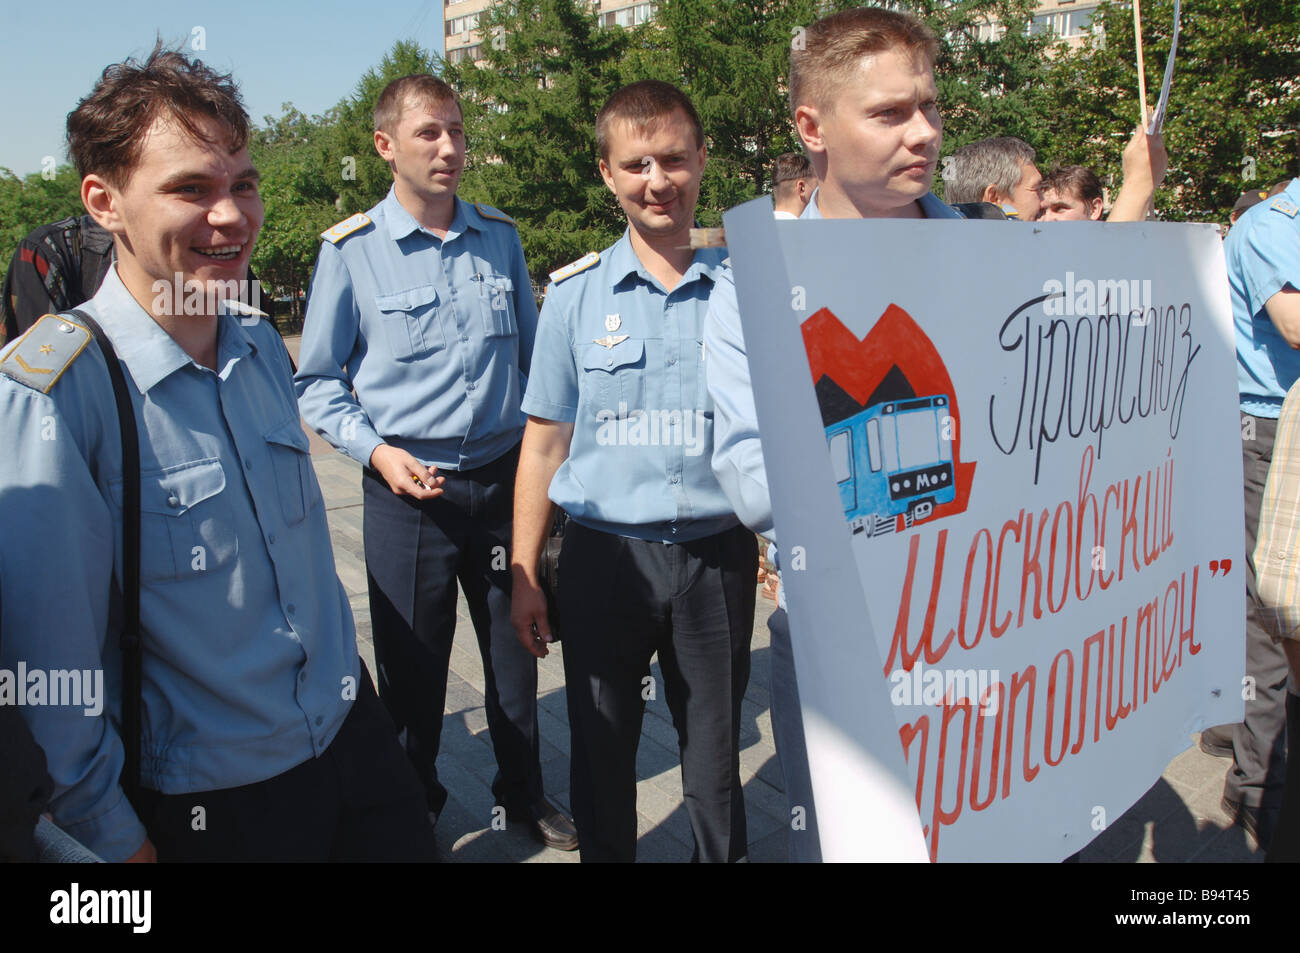 Picket of the GUP Moscow Metro demanding higher wages better working conditions and better safety for passengers - Stock Image